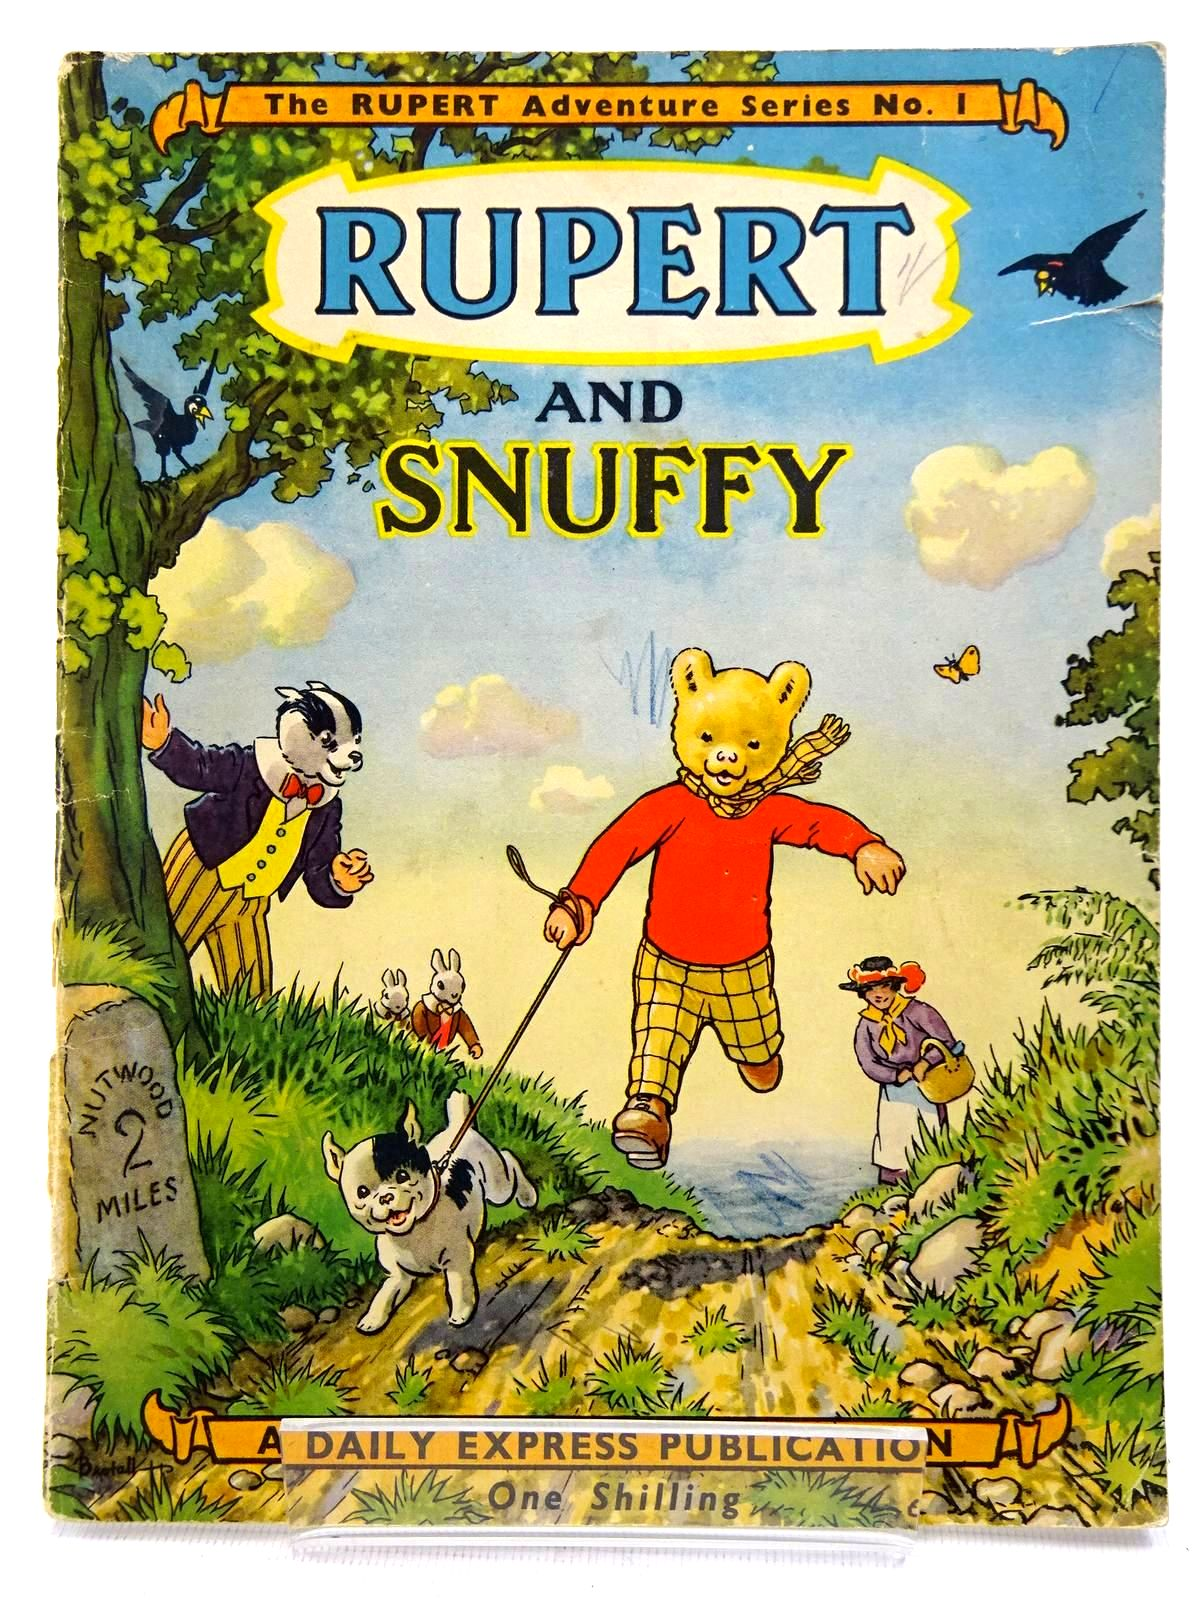 Photo of RUPERT ADVENTURE SERIES No. 1 - RUPERT AND SNUFFY written by Bestall, Alfred illustrated by Bestall, Alfred published by Daily Express (STOCK CODE: 2128597)  for sale by Stella & Rose's Books